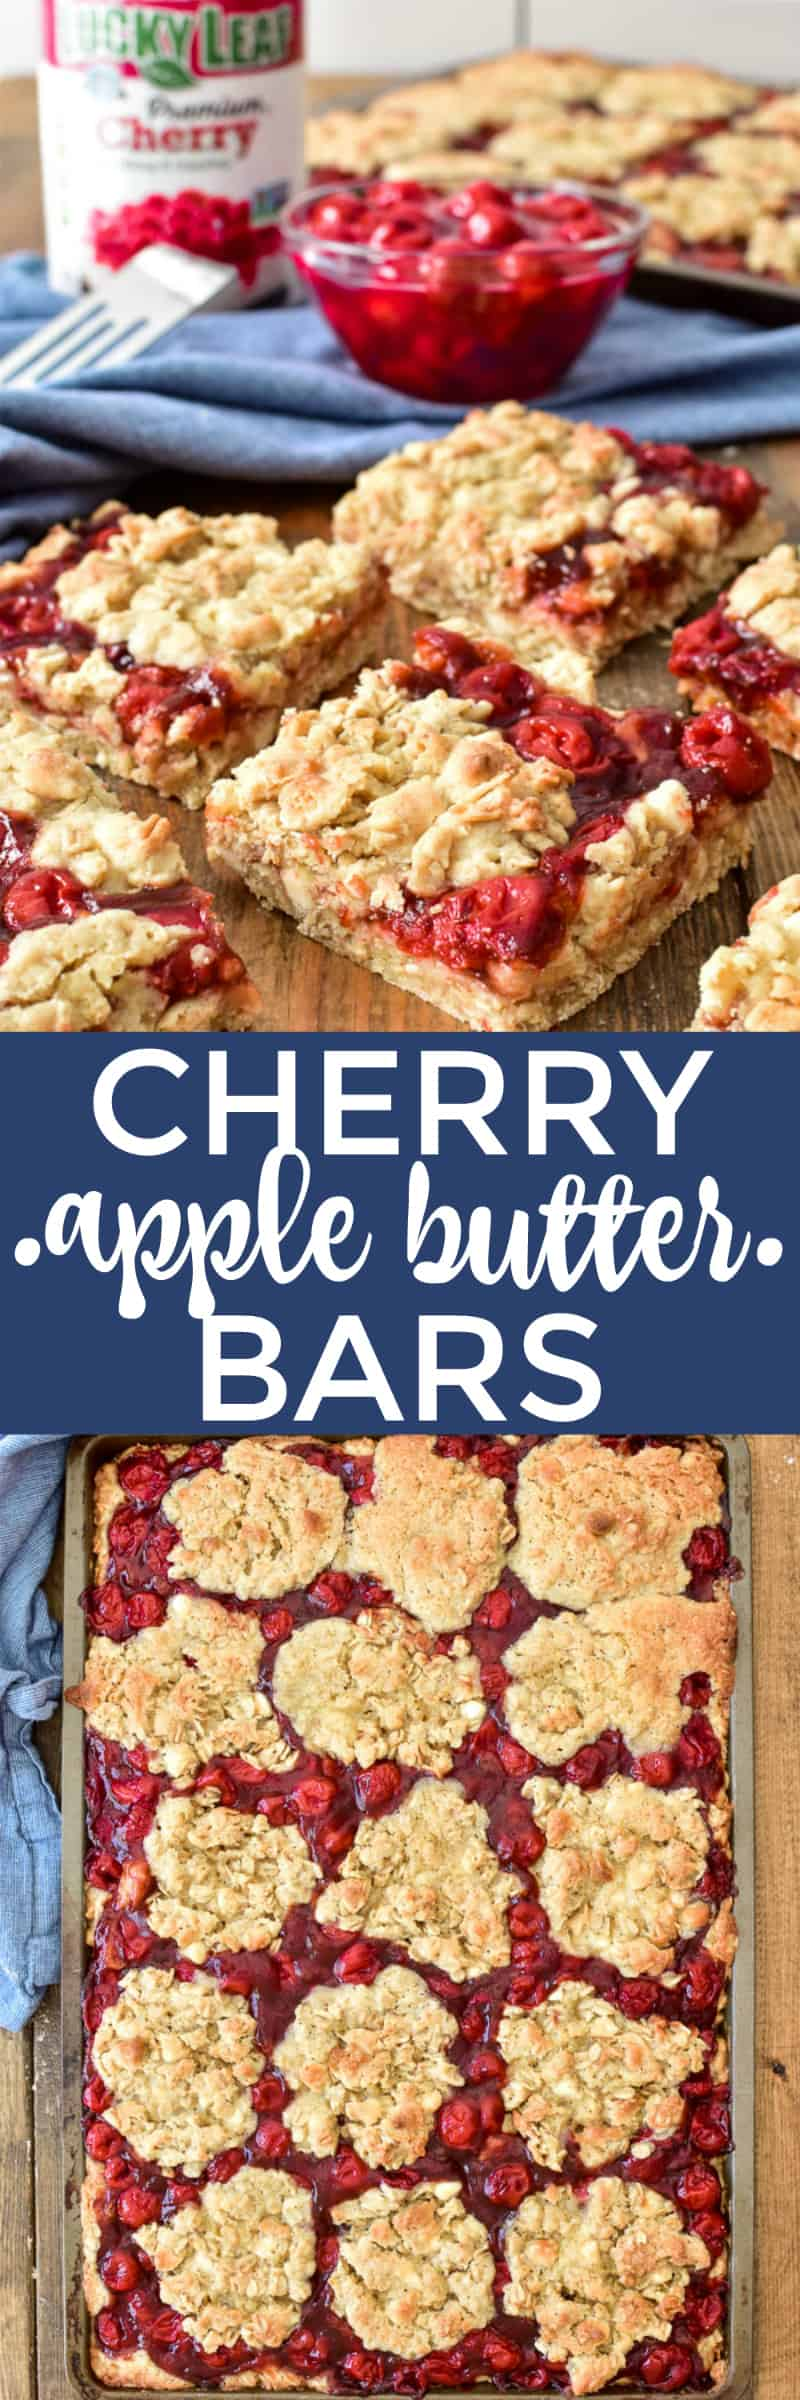 These Cherry Apple Butter Bars are the ultimate cherry pie bars. They're sweet, delicious, and perfect for feeding a crowd. Made with Lucky Leaf Cherry Pie Filling and a twist of apple butter, these bars take your favorite dessert to the next level. They're easy to make, easy to transport, and one pan goes a long way!